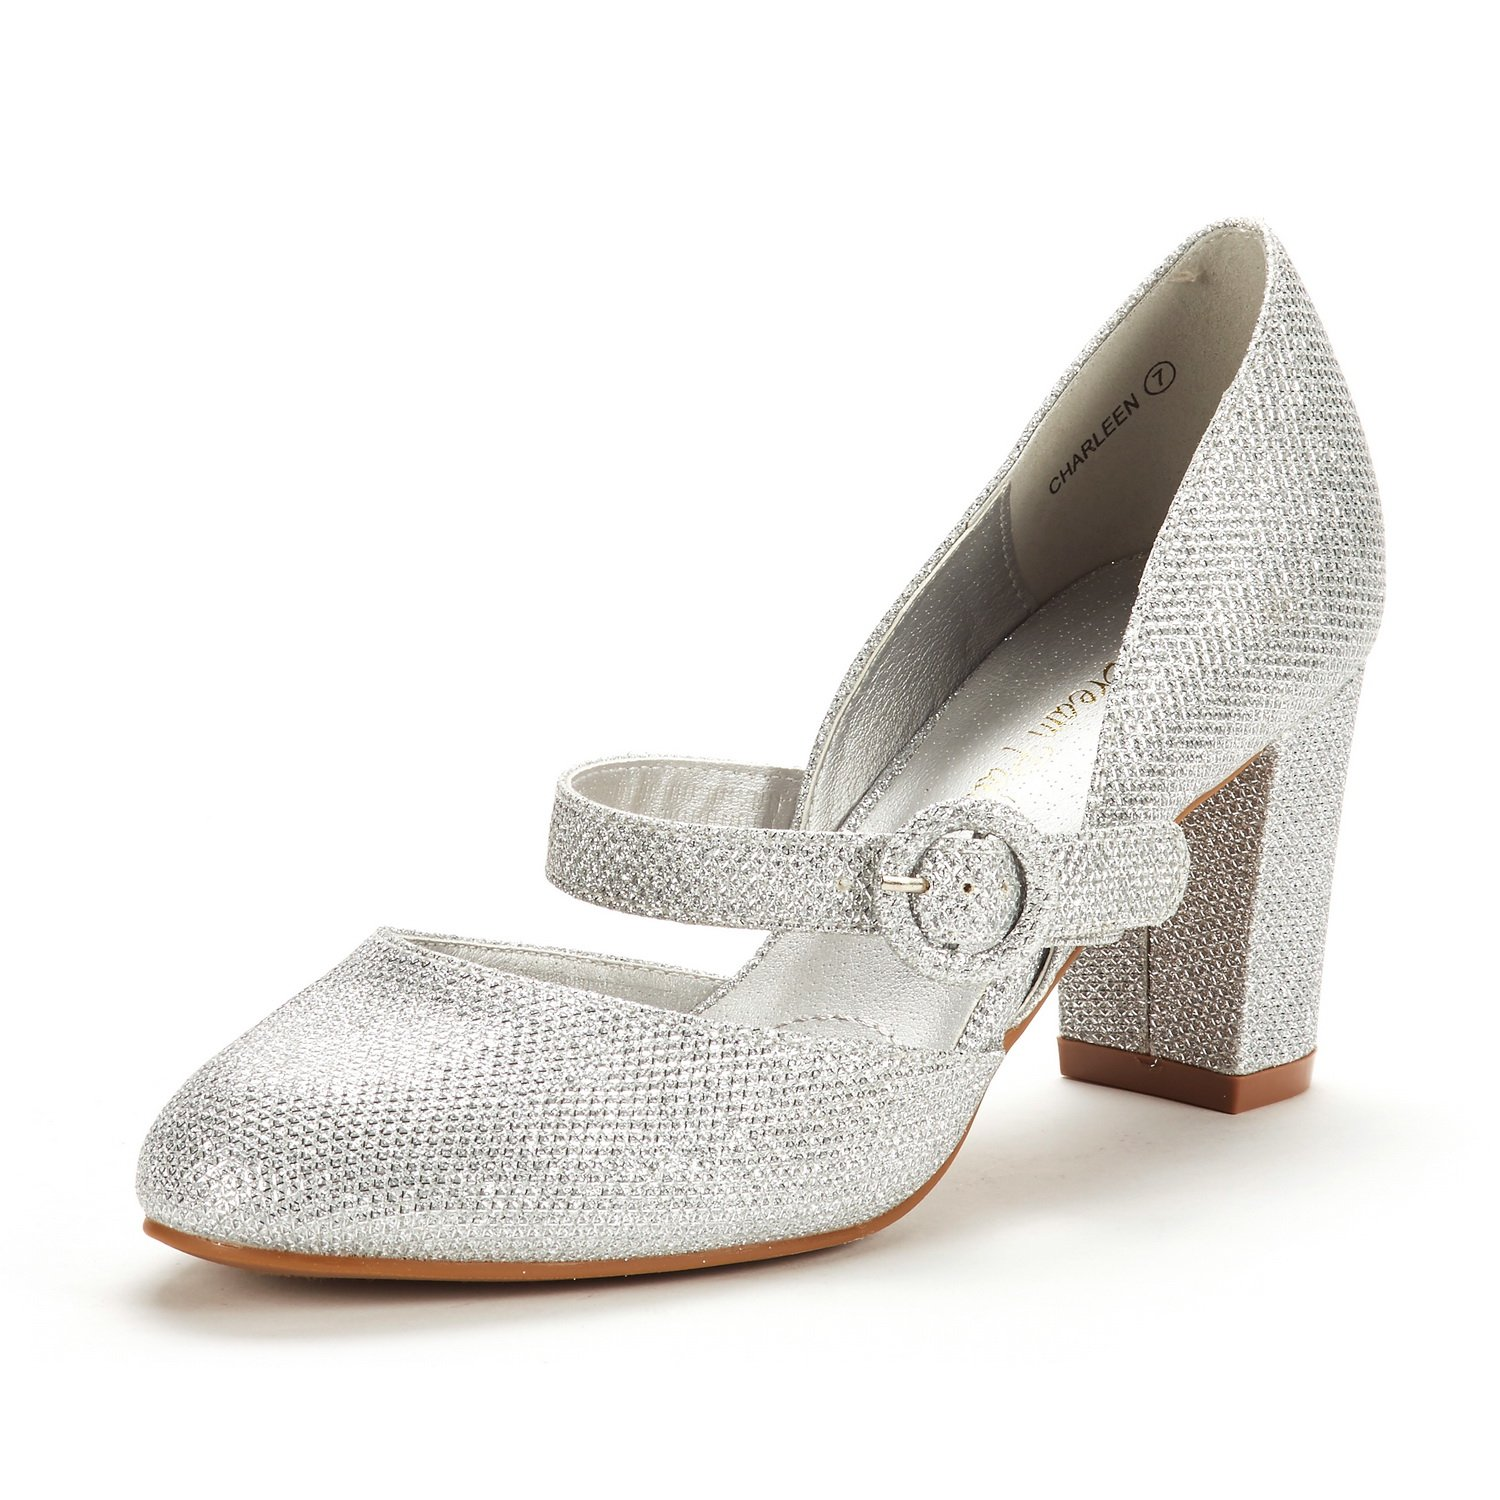 DREAM PAIRS Women's Charleen Silver Glitter Classic Fashion Closed Toe High Heel Dress Pumps Shoes Size 9 M US